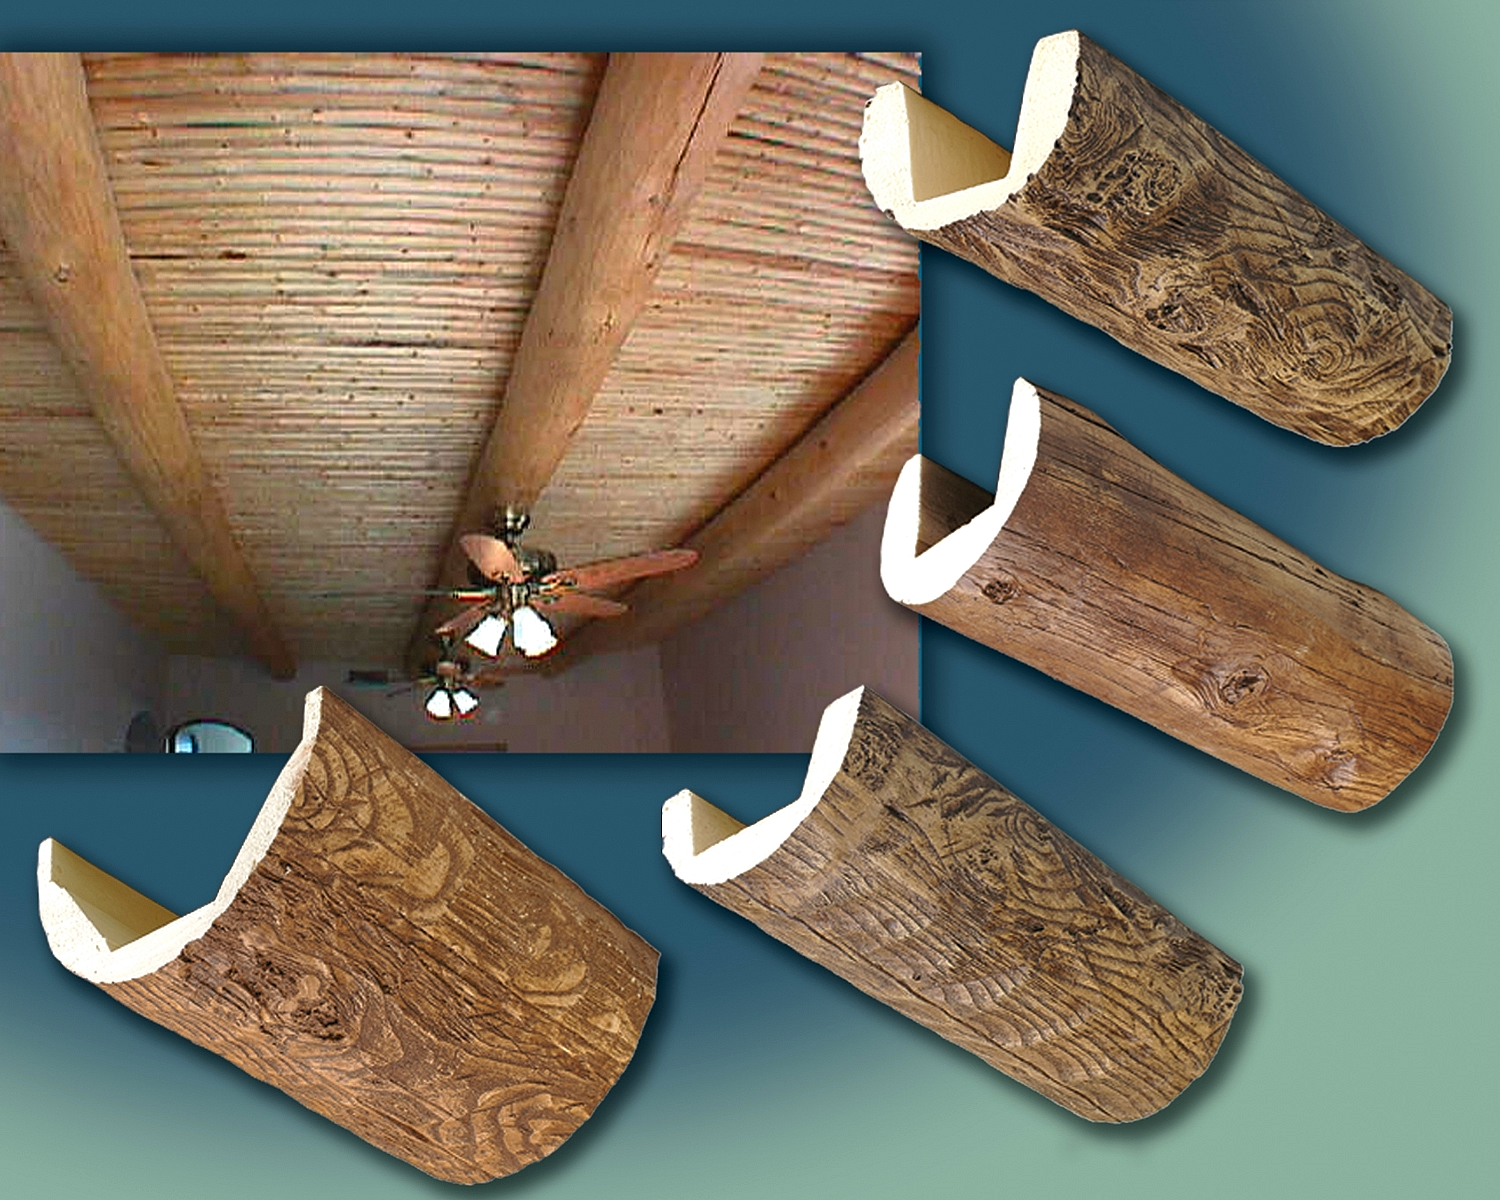 Exterior Decorative Wood Beams Example of a mountain style